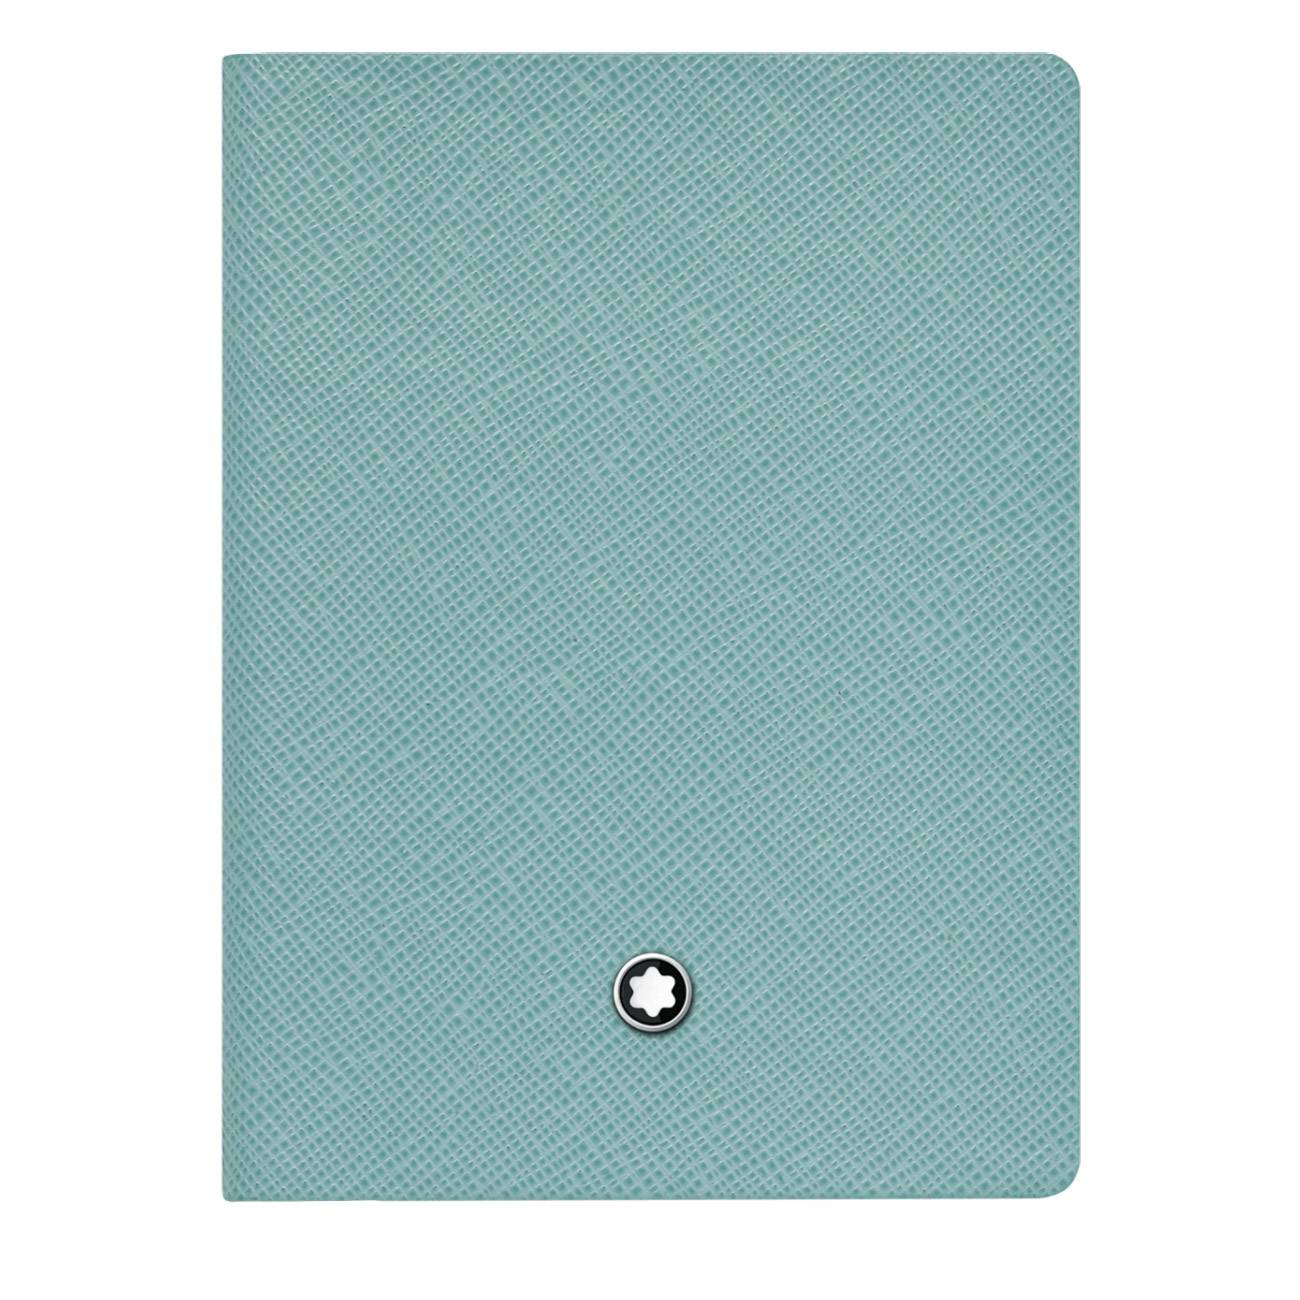 NOTEBOOK MINT LINED - 192 pages